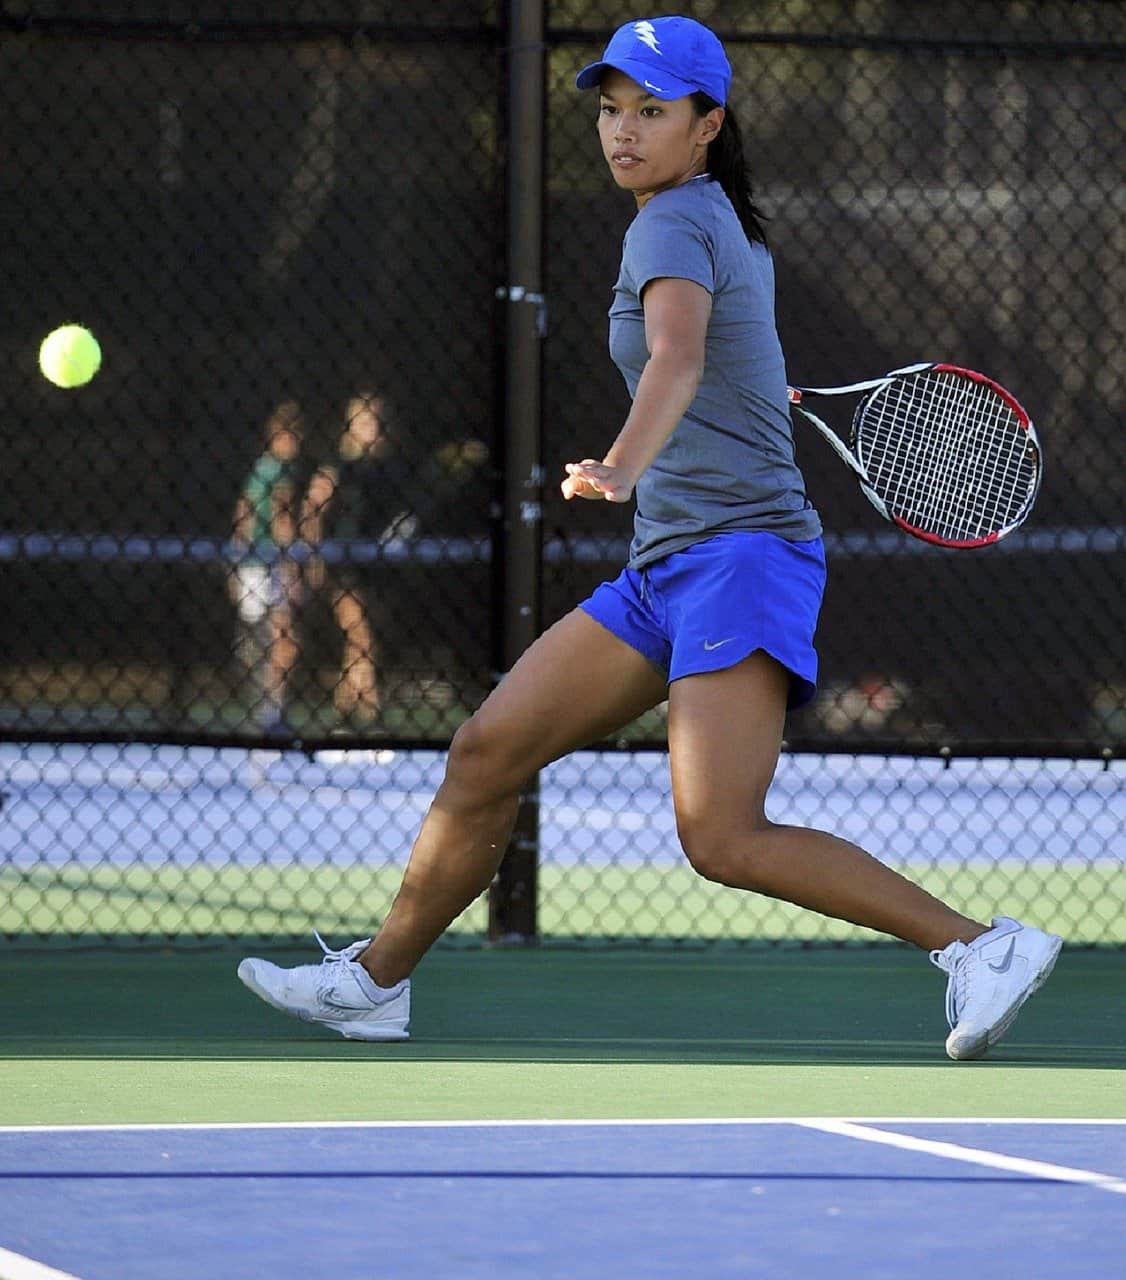 A Professional Tennis Player: How To Become One